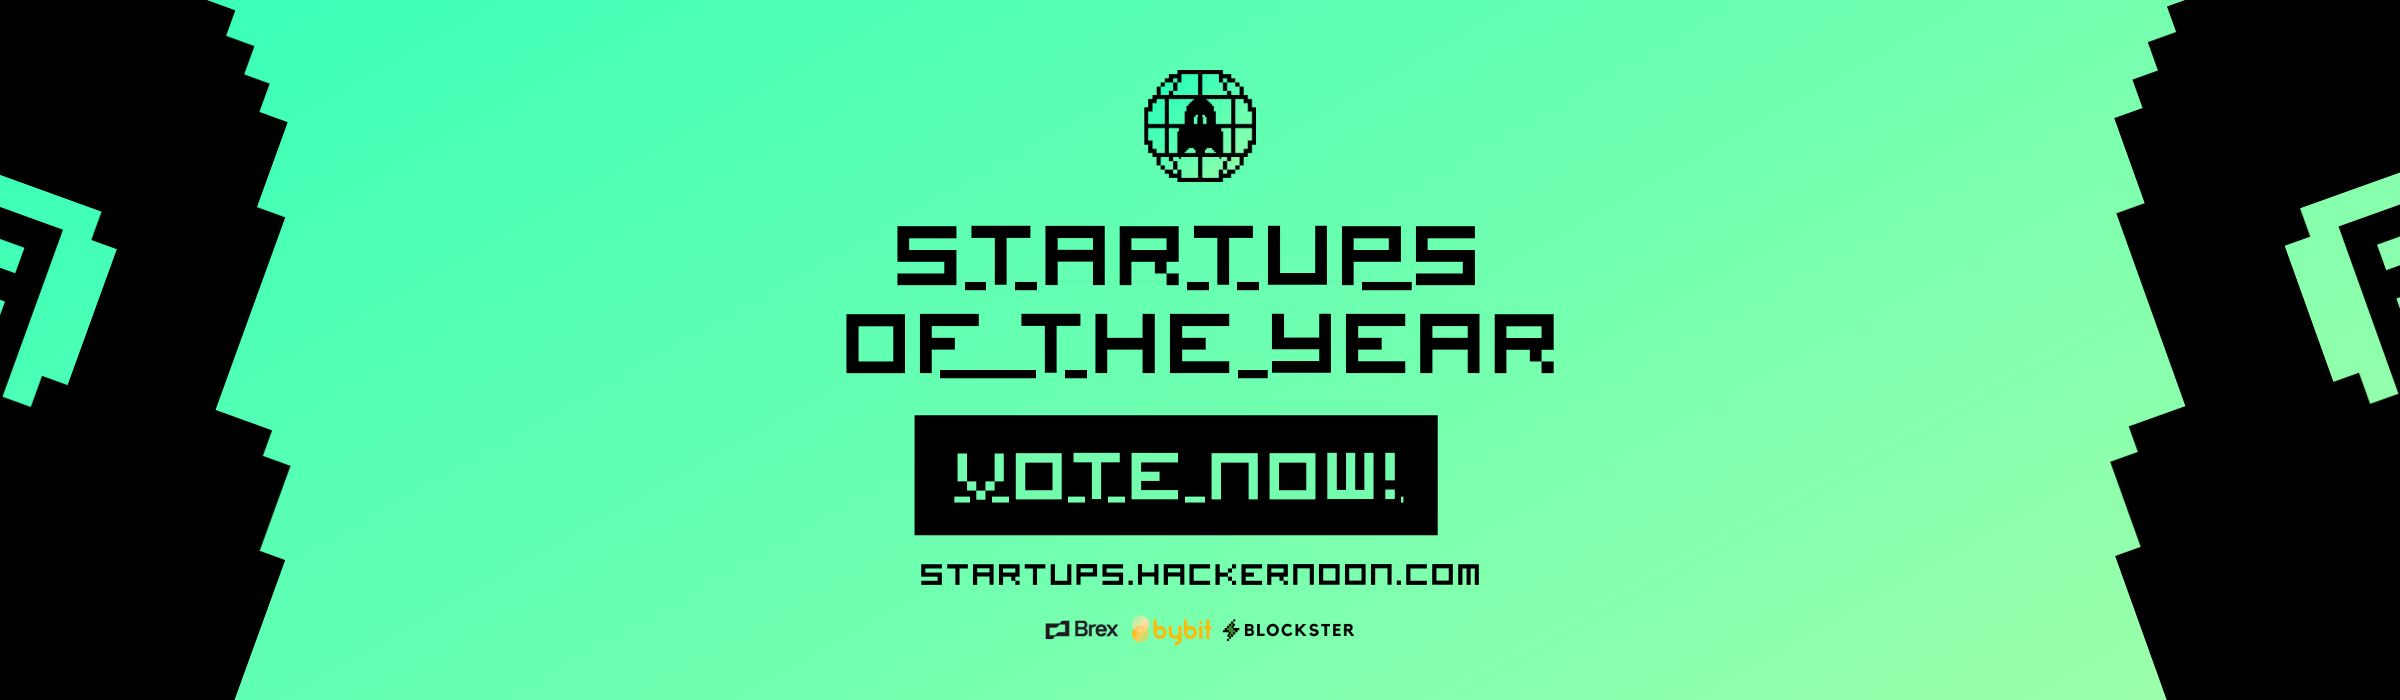 /vote-now-for-the-worldwide-web-startups-of-the-year-2021-il4t35i8 feature image